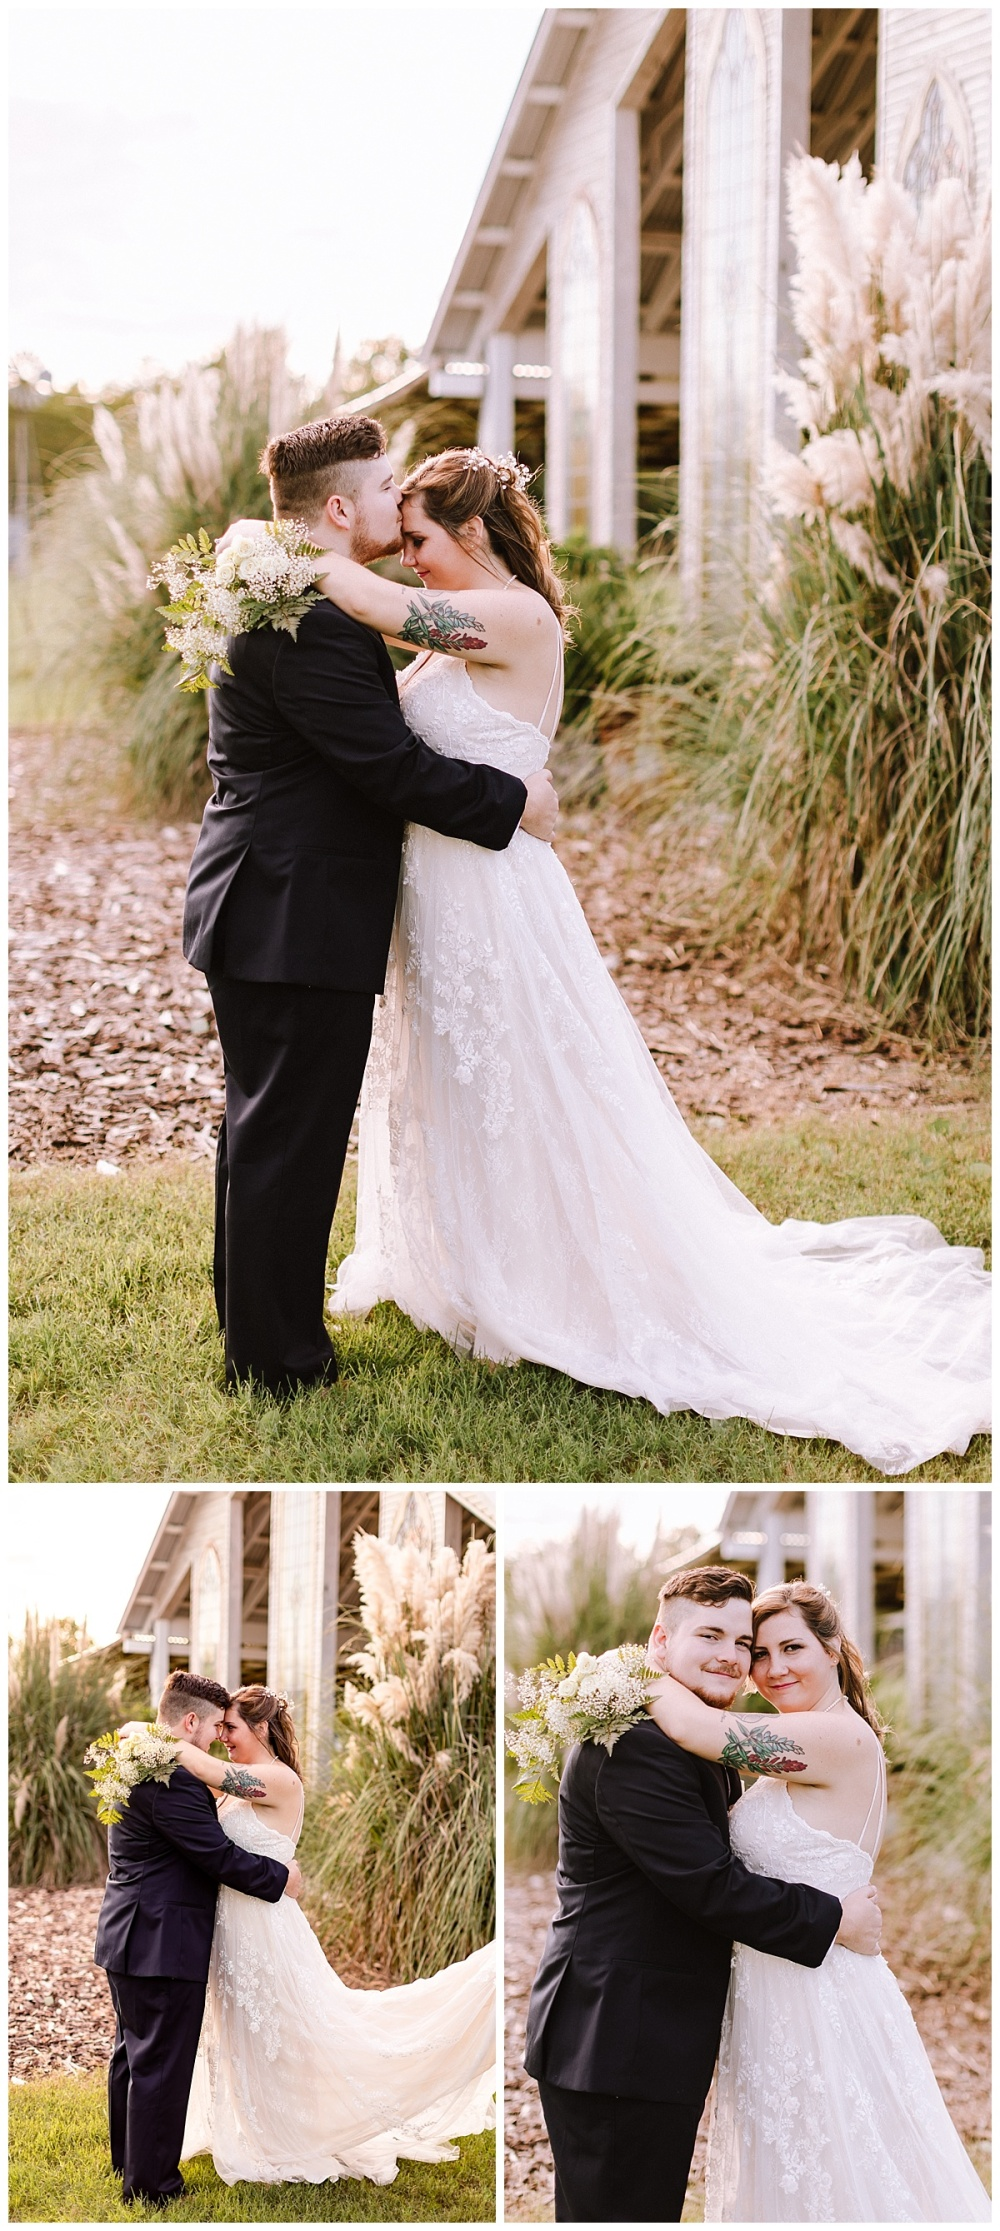 Texas-Wedding-Photographer-Gruene-Estate-Open-Air-Chapel-Carly-Barton-Photography-Katie-Nic_0050.jpg